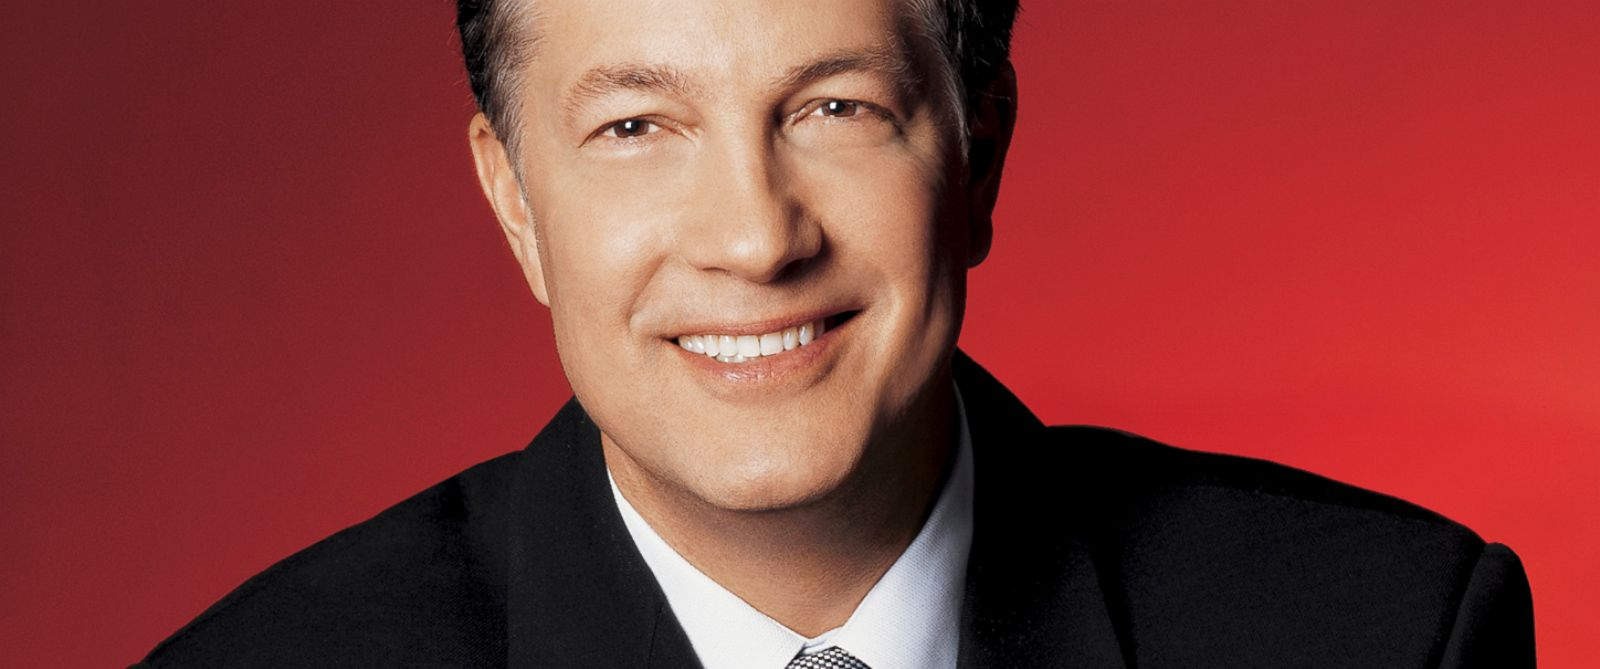 PHOTO: Target Corp. Chairman and CEO Gregg Steinhafel is seen in this undated file photo.